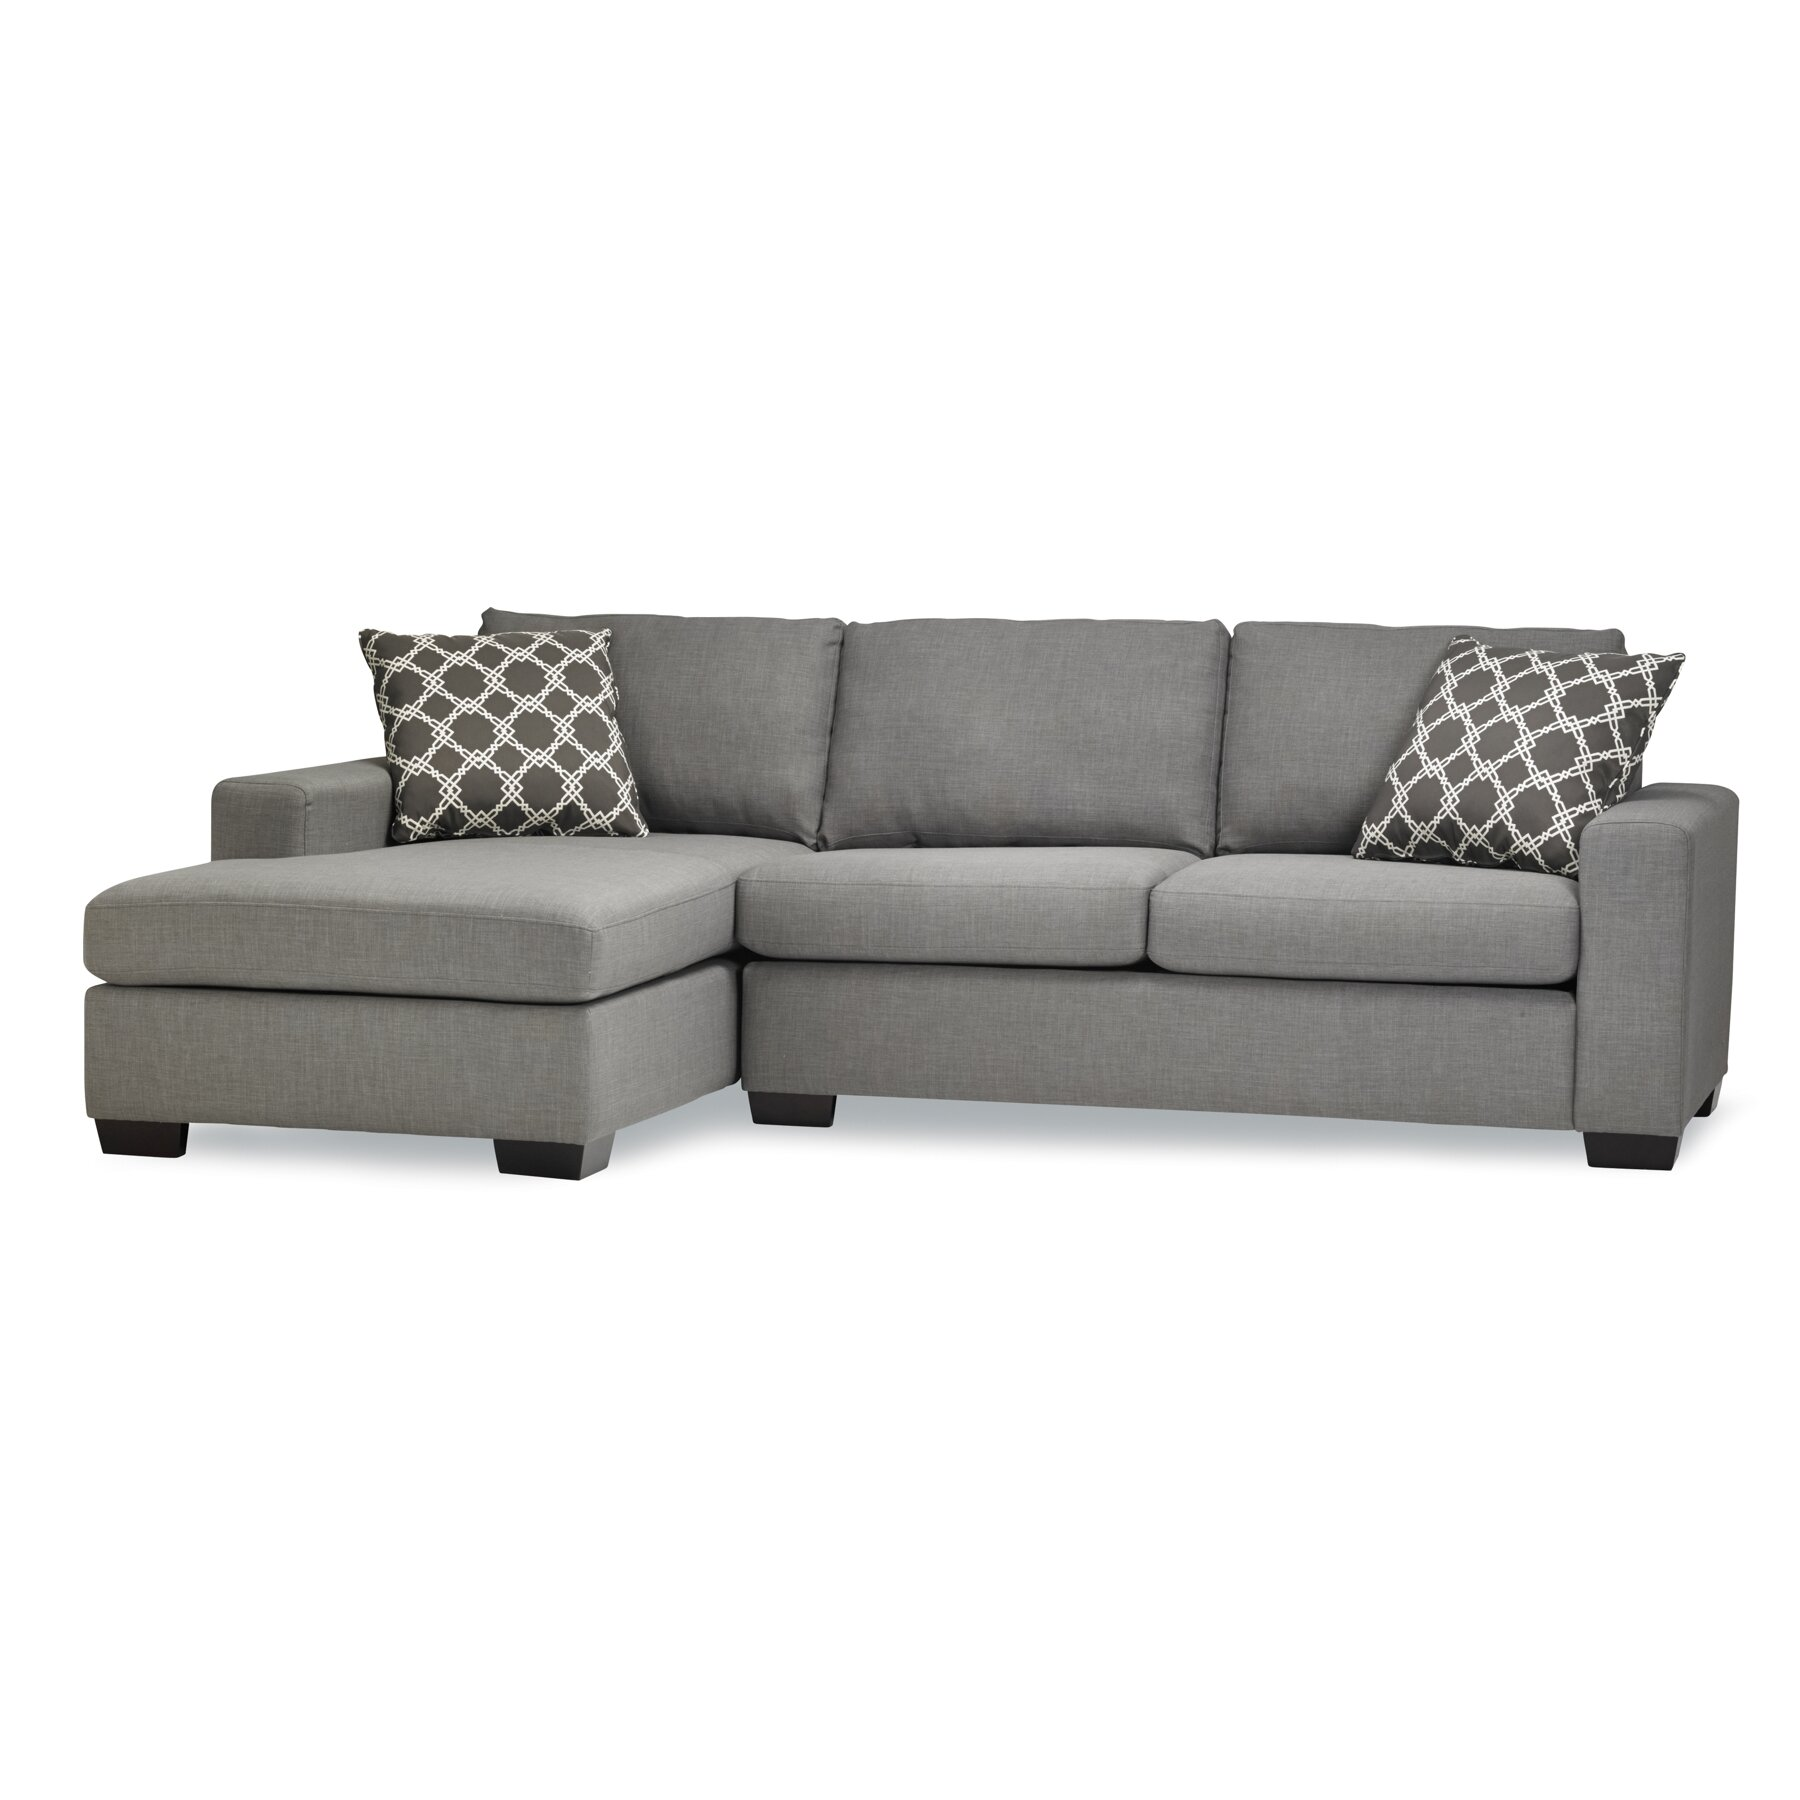 Sectional Sleeper Sofa : Sofas to go mimi sleeper sectional reviews wayfair